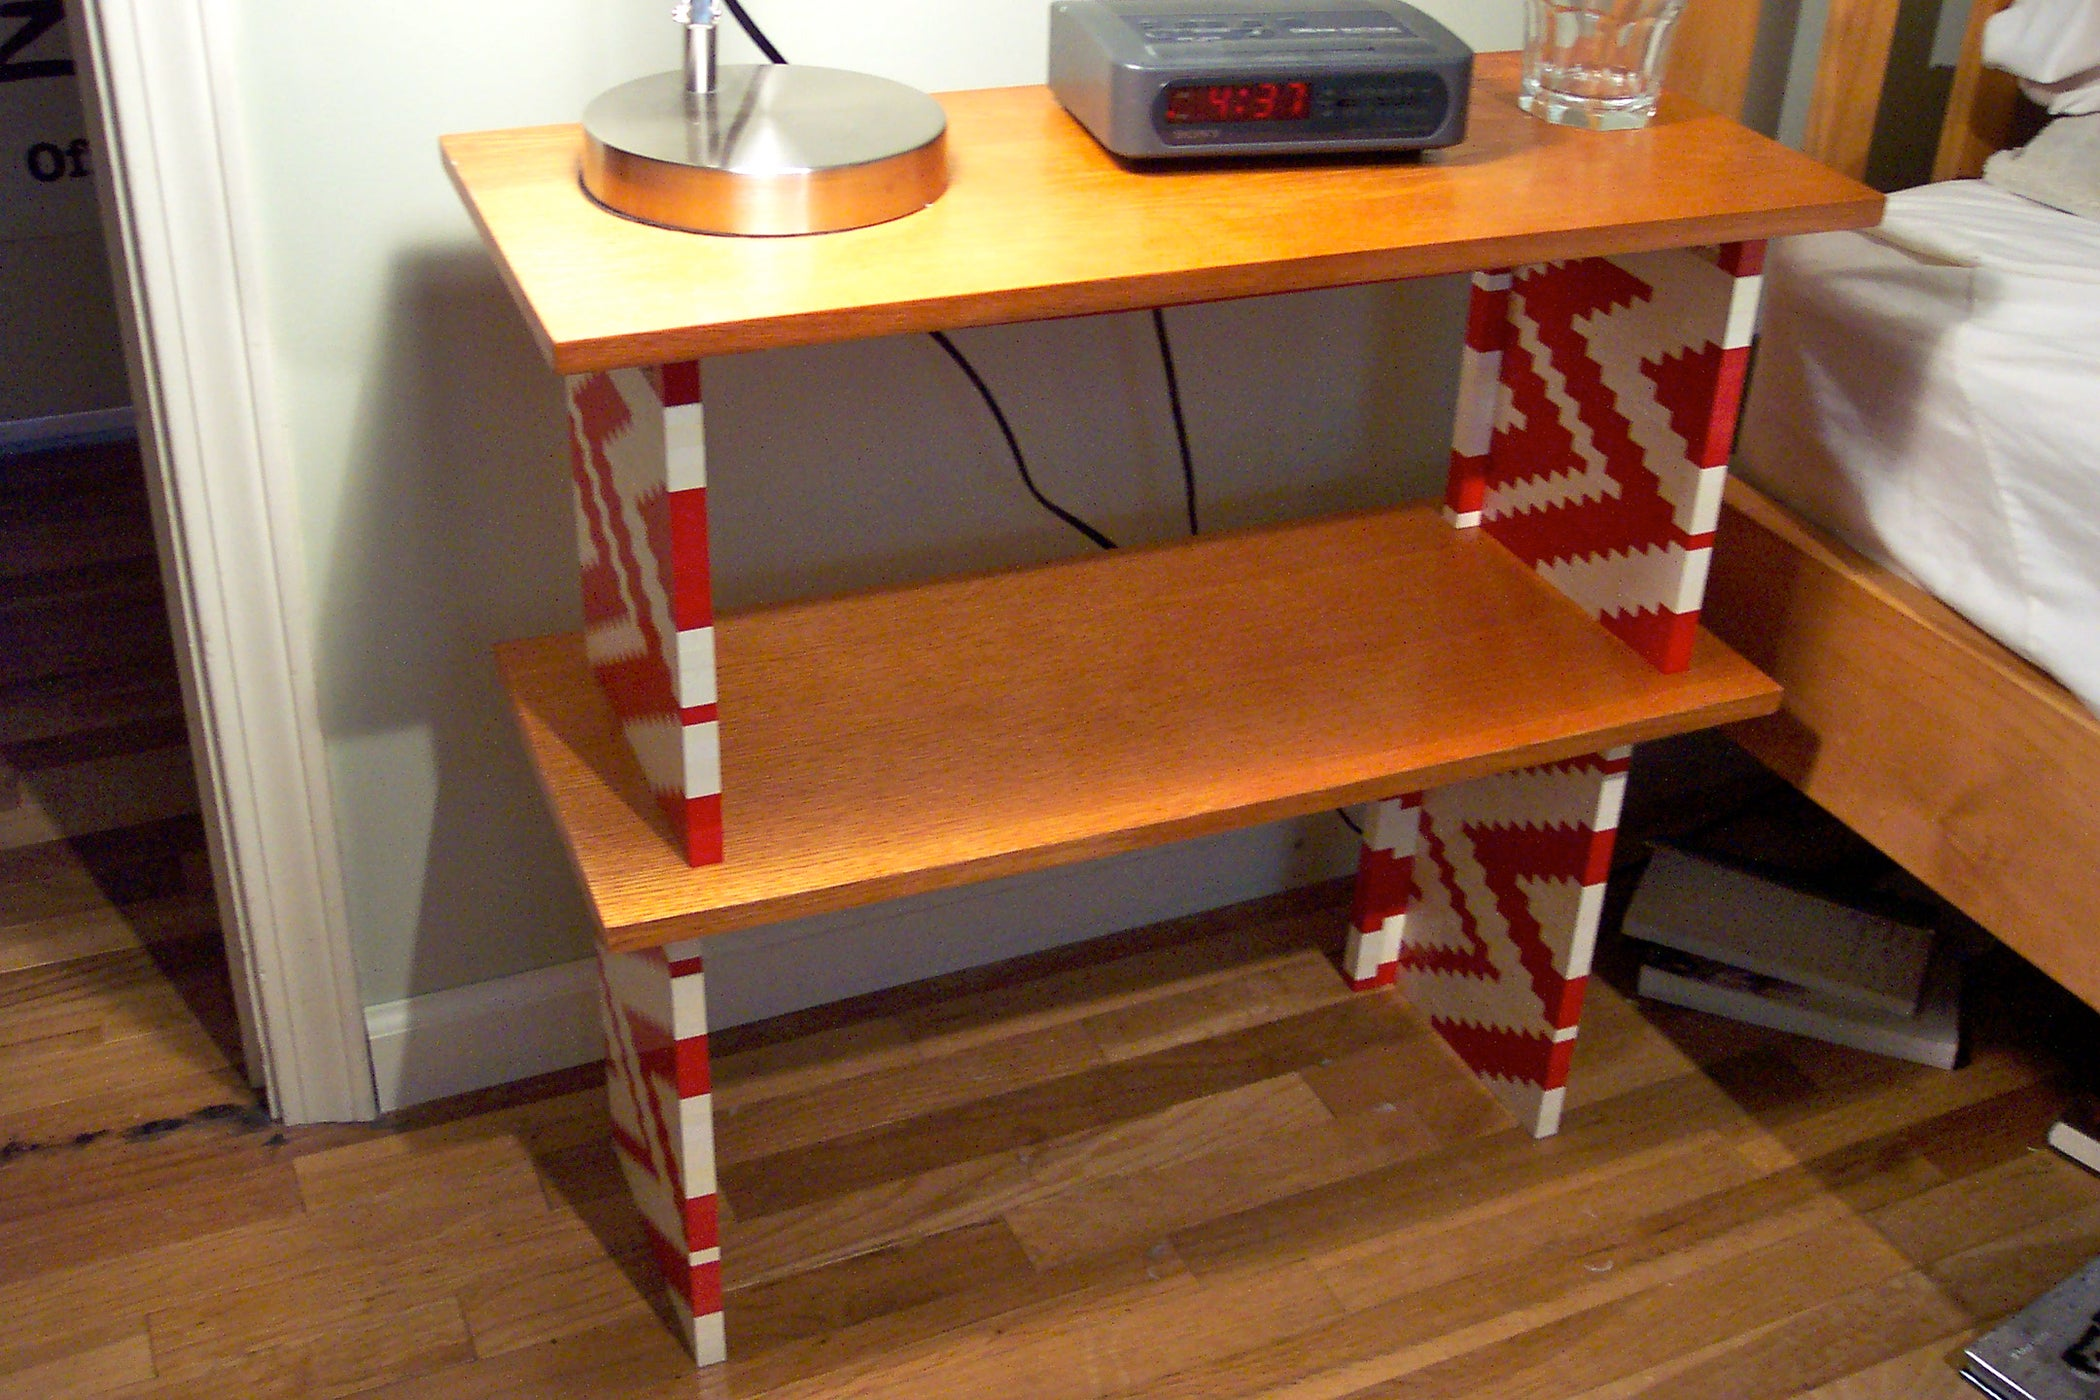 Lego & Wood Bedside Table : 6 Steps (with Pictures ...